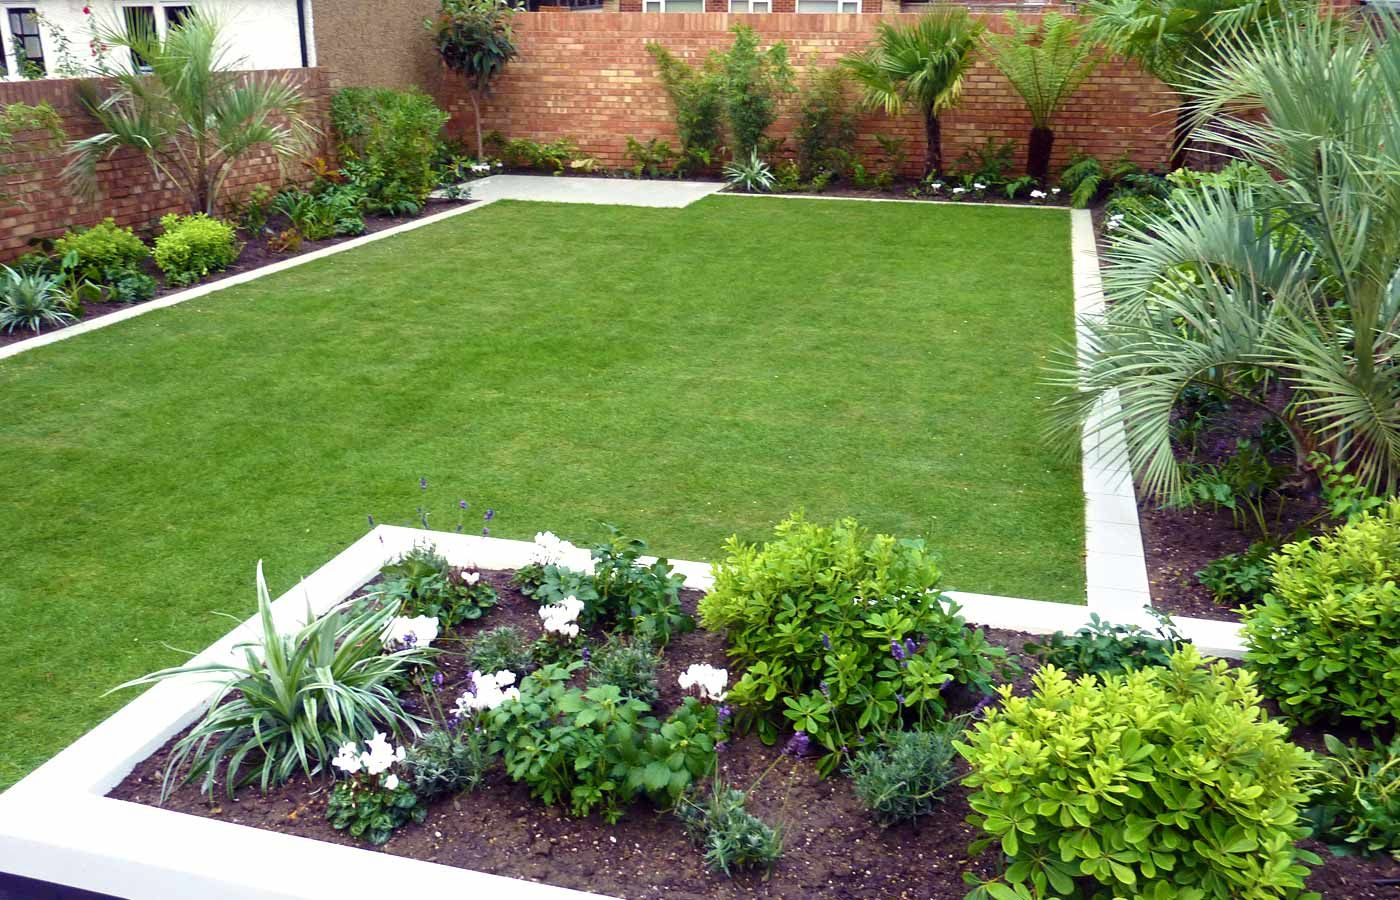 Garden Design Ideas beautiful minimalist garden design ideas youtube Medium Sized Backyard Landscape Ideas With Grass And Bamboo Ideas Simple Urban Garden Designcontemporary